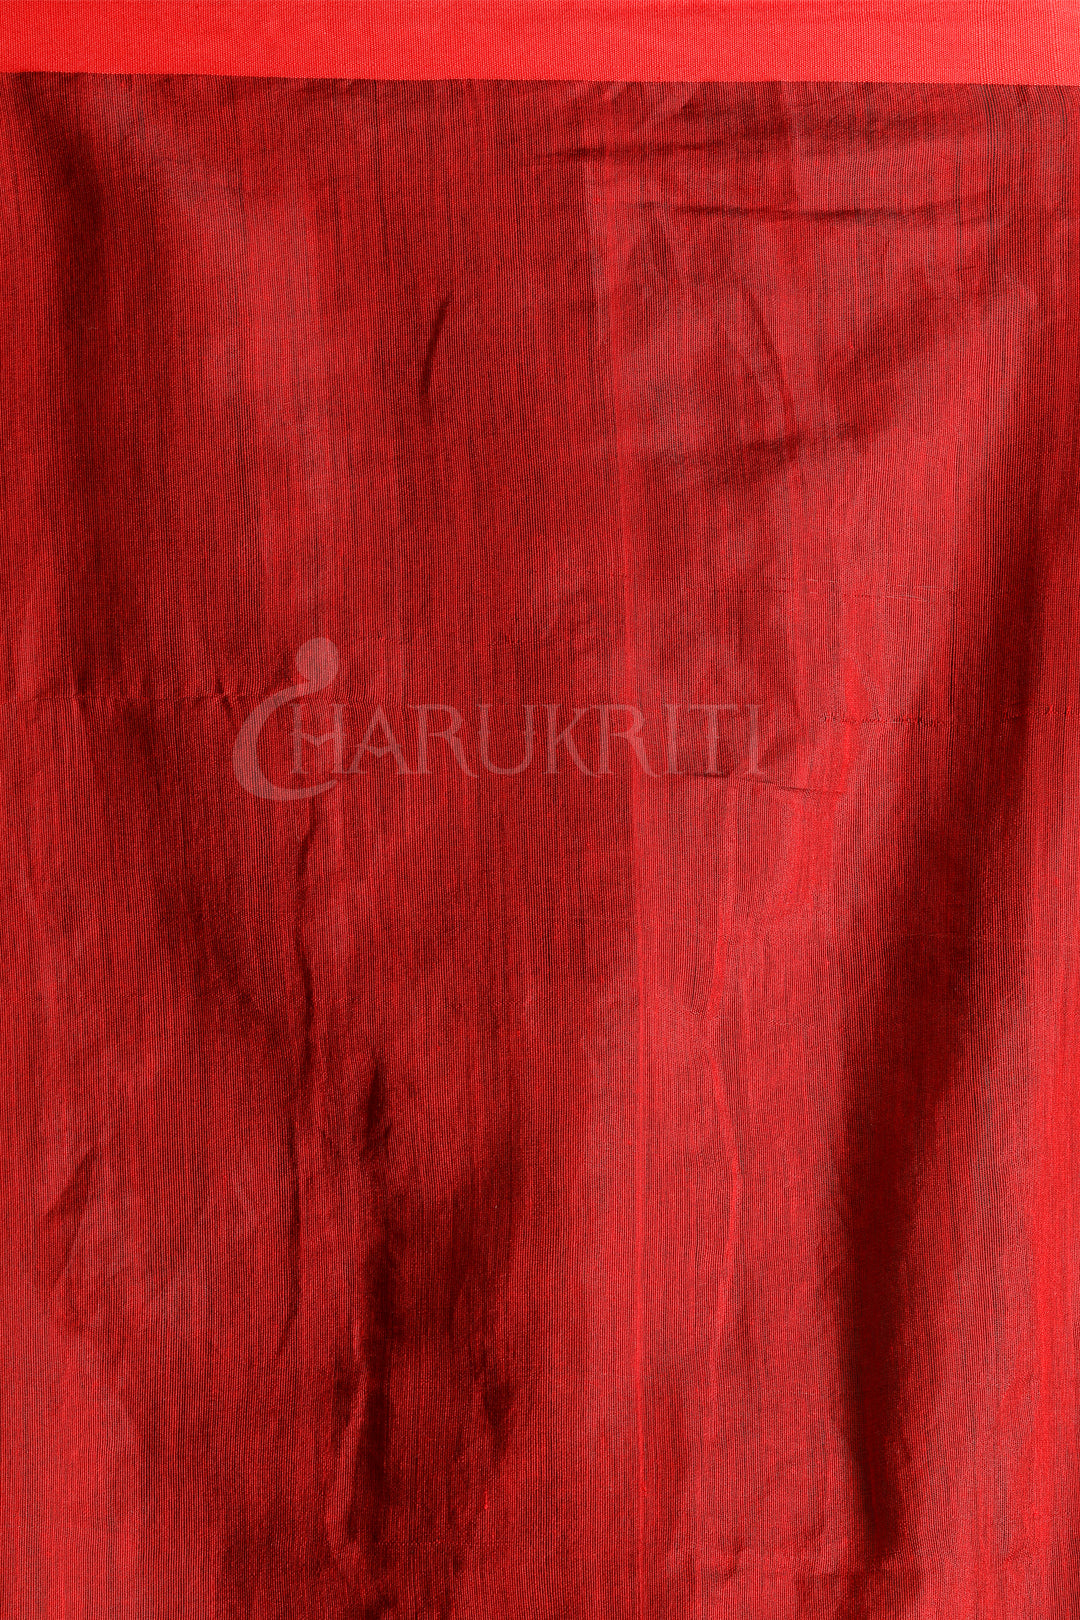 BLACK AND RED TEXTURED SILK SAREE - Charukriti